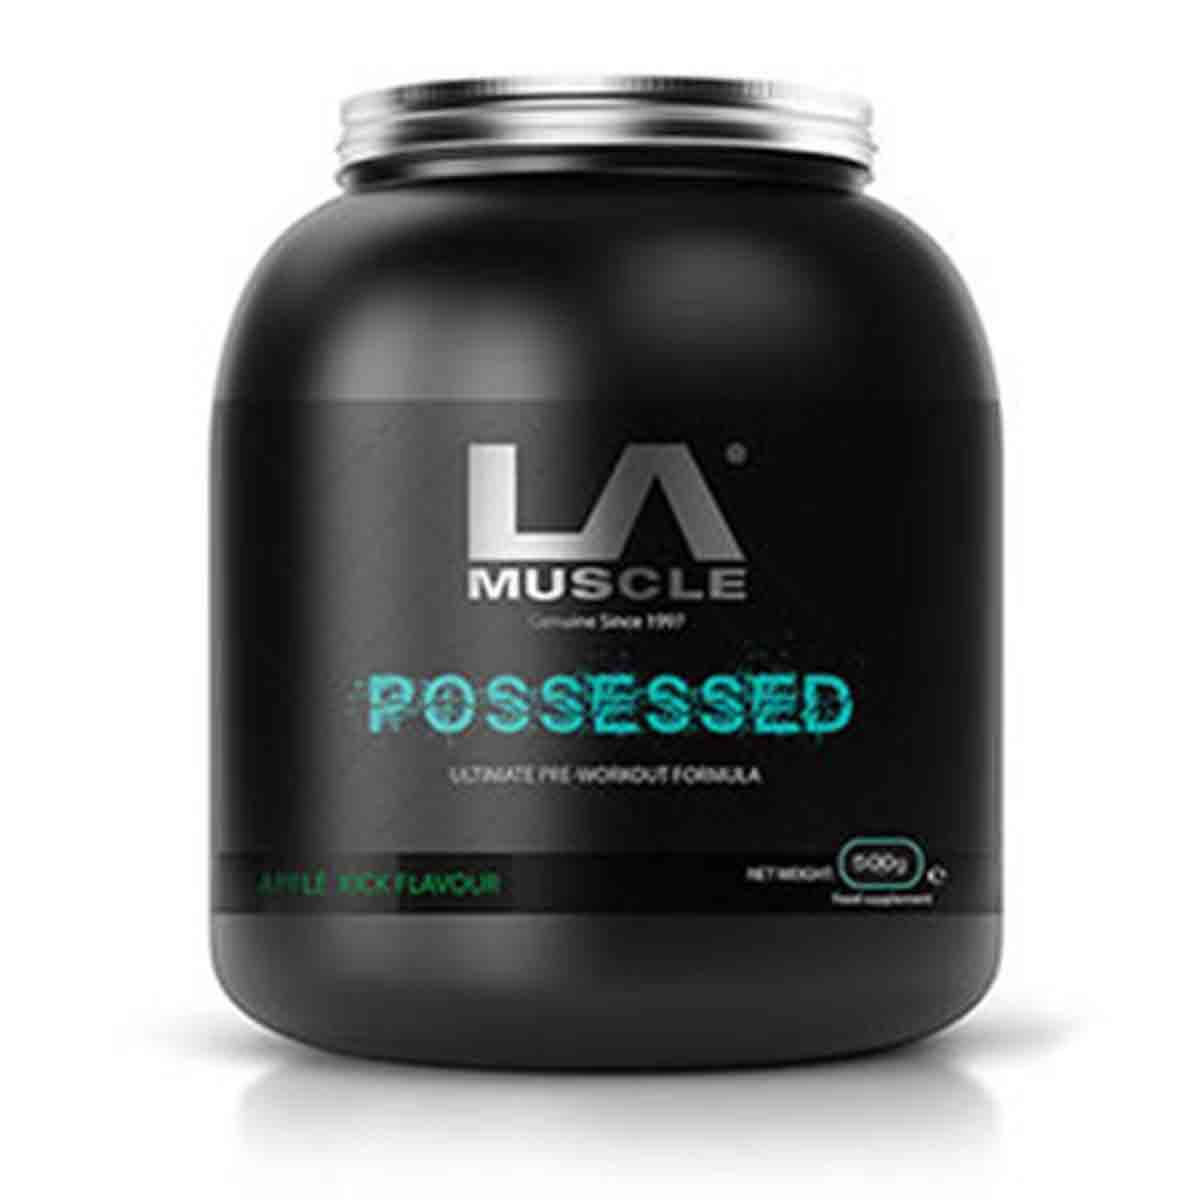 LA Muscle Possessed